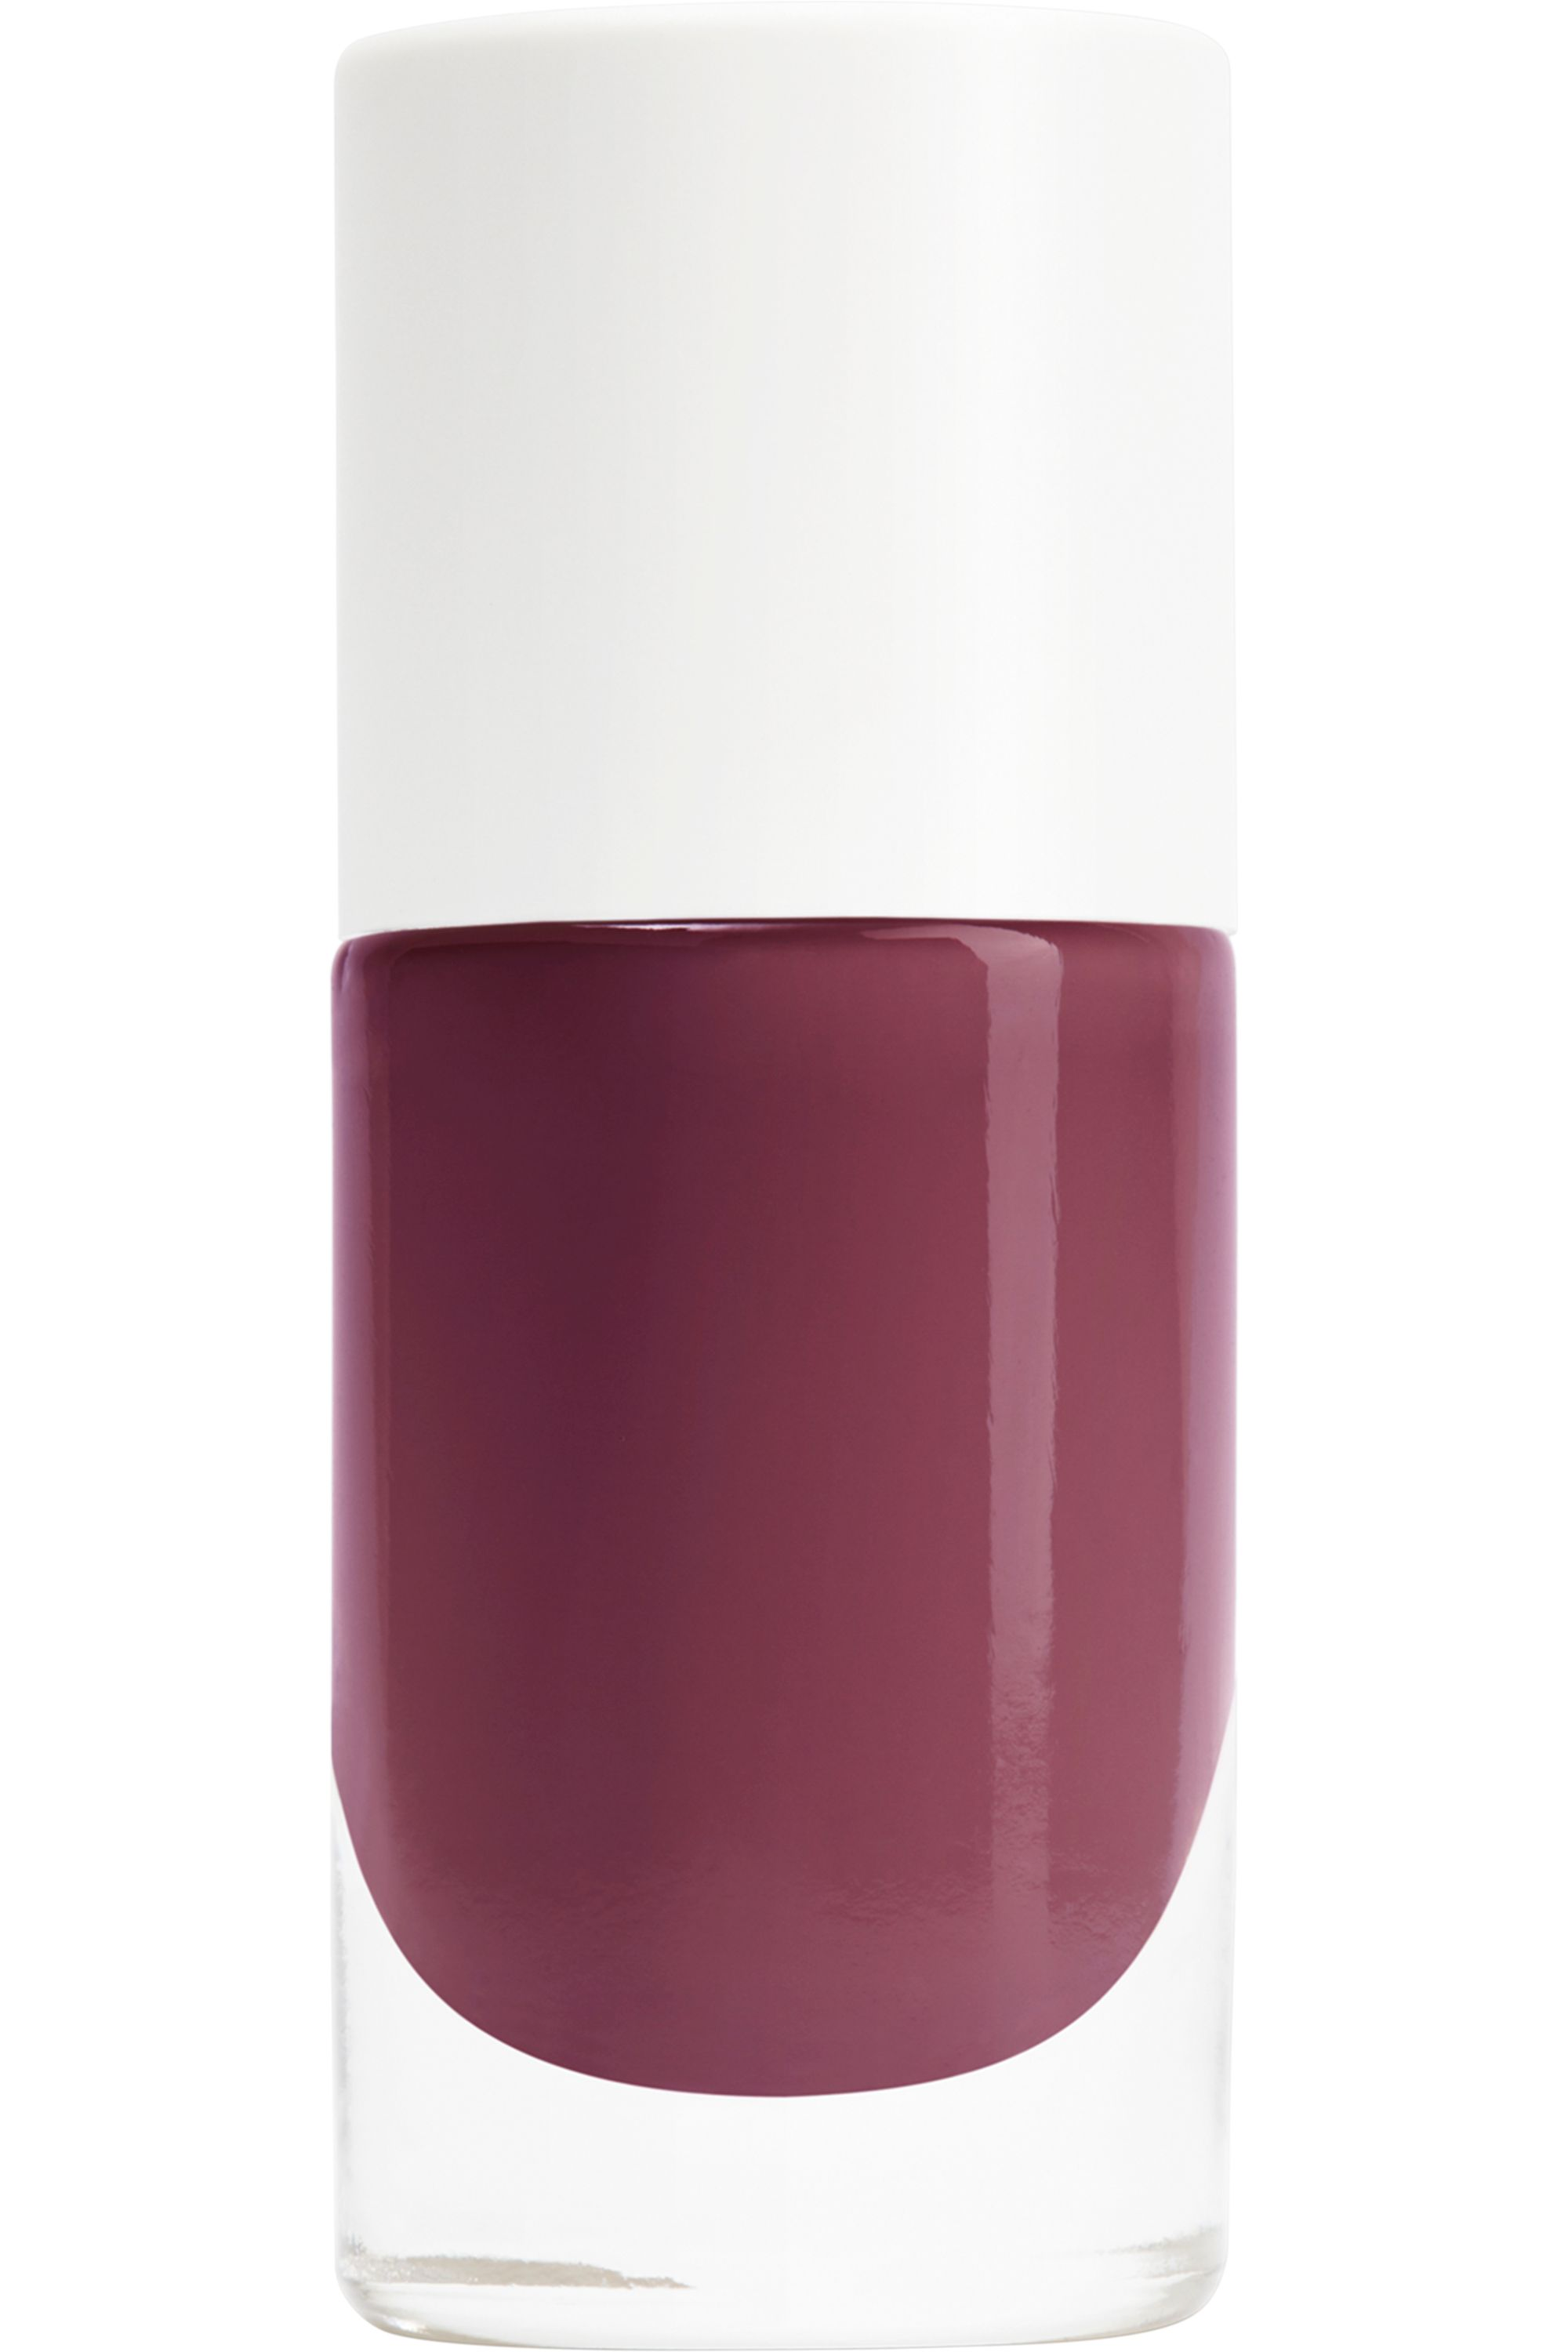 Blissim : Nailmatic - Vernis à ongles Pure Color - Pure Color Misha